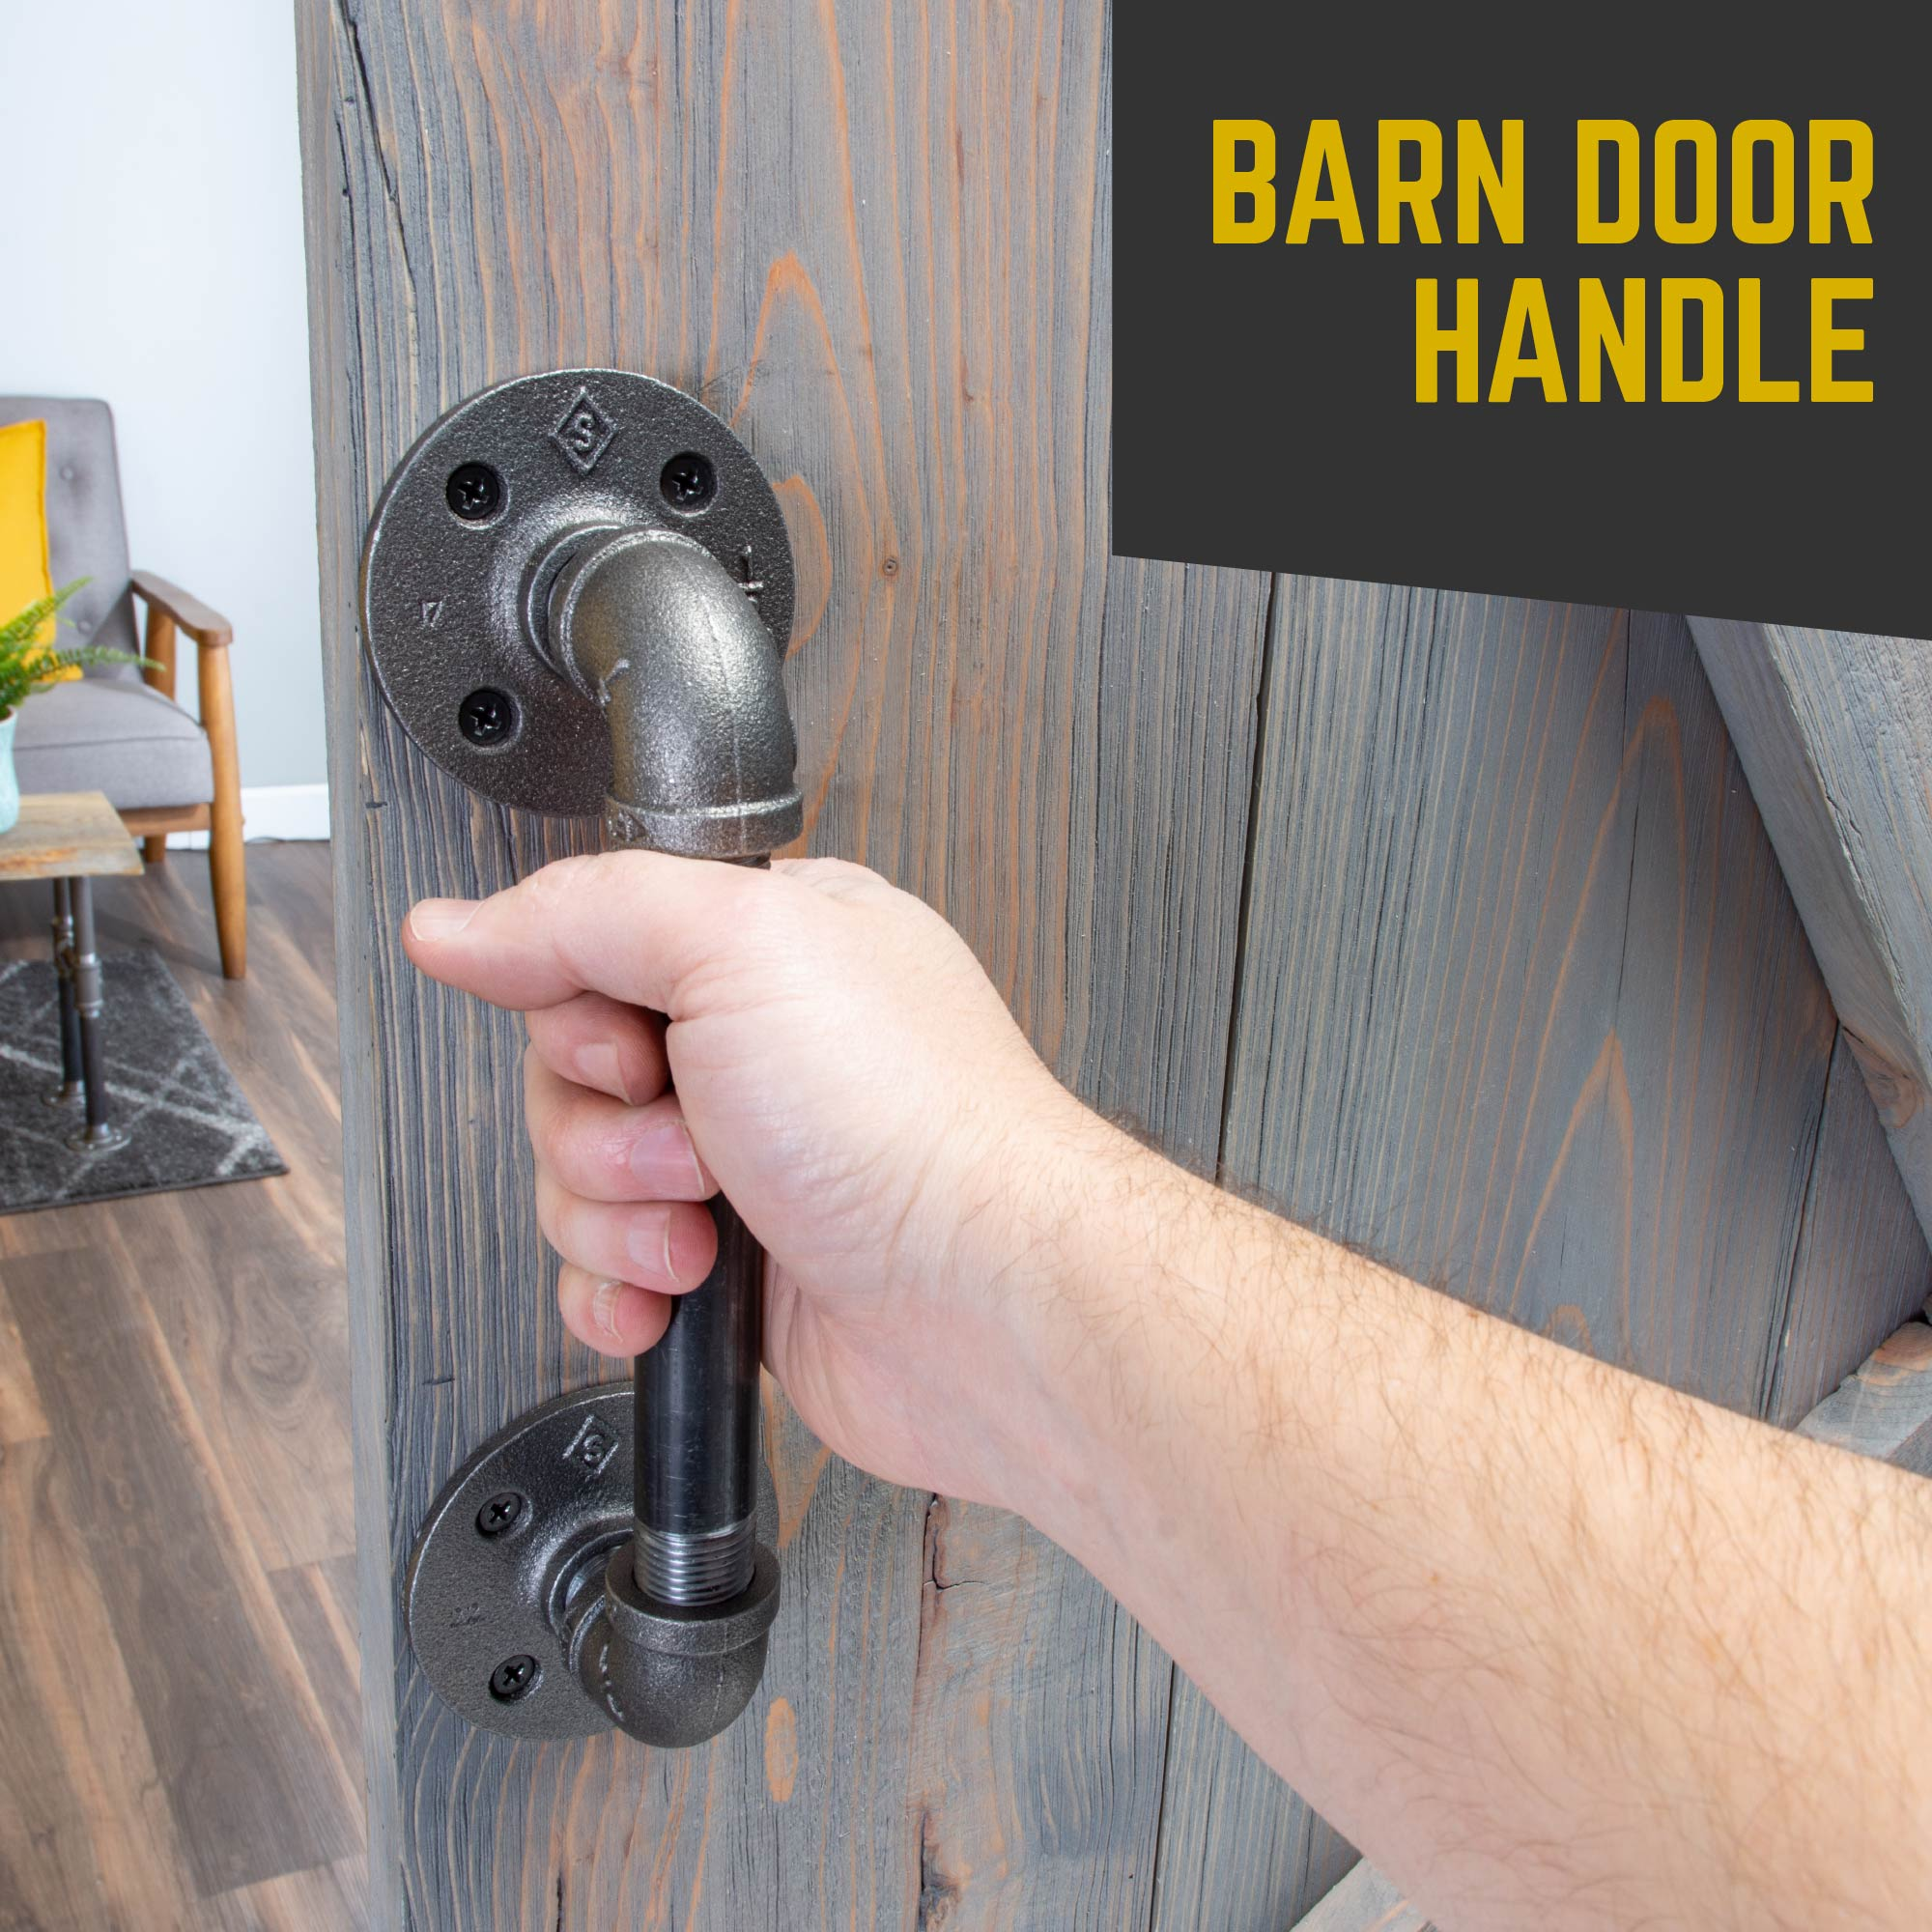 1/2 In. x 6 in. Barn Door Handle - 10.5 in. L